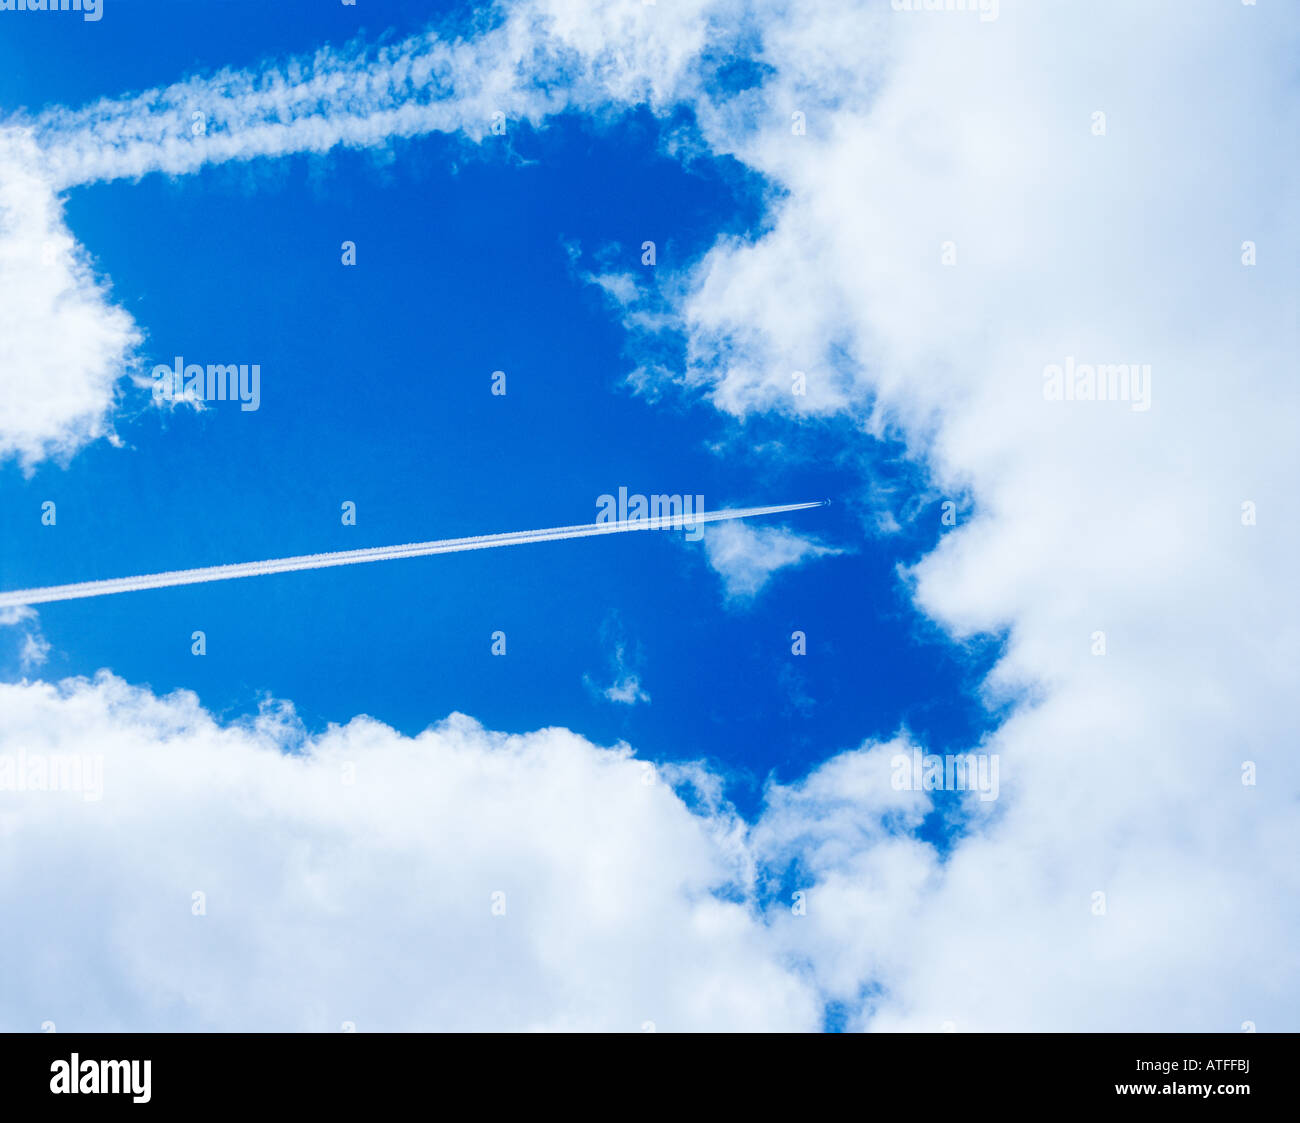 An aeroplanes vapour trail in the sky - Stock Image